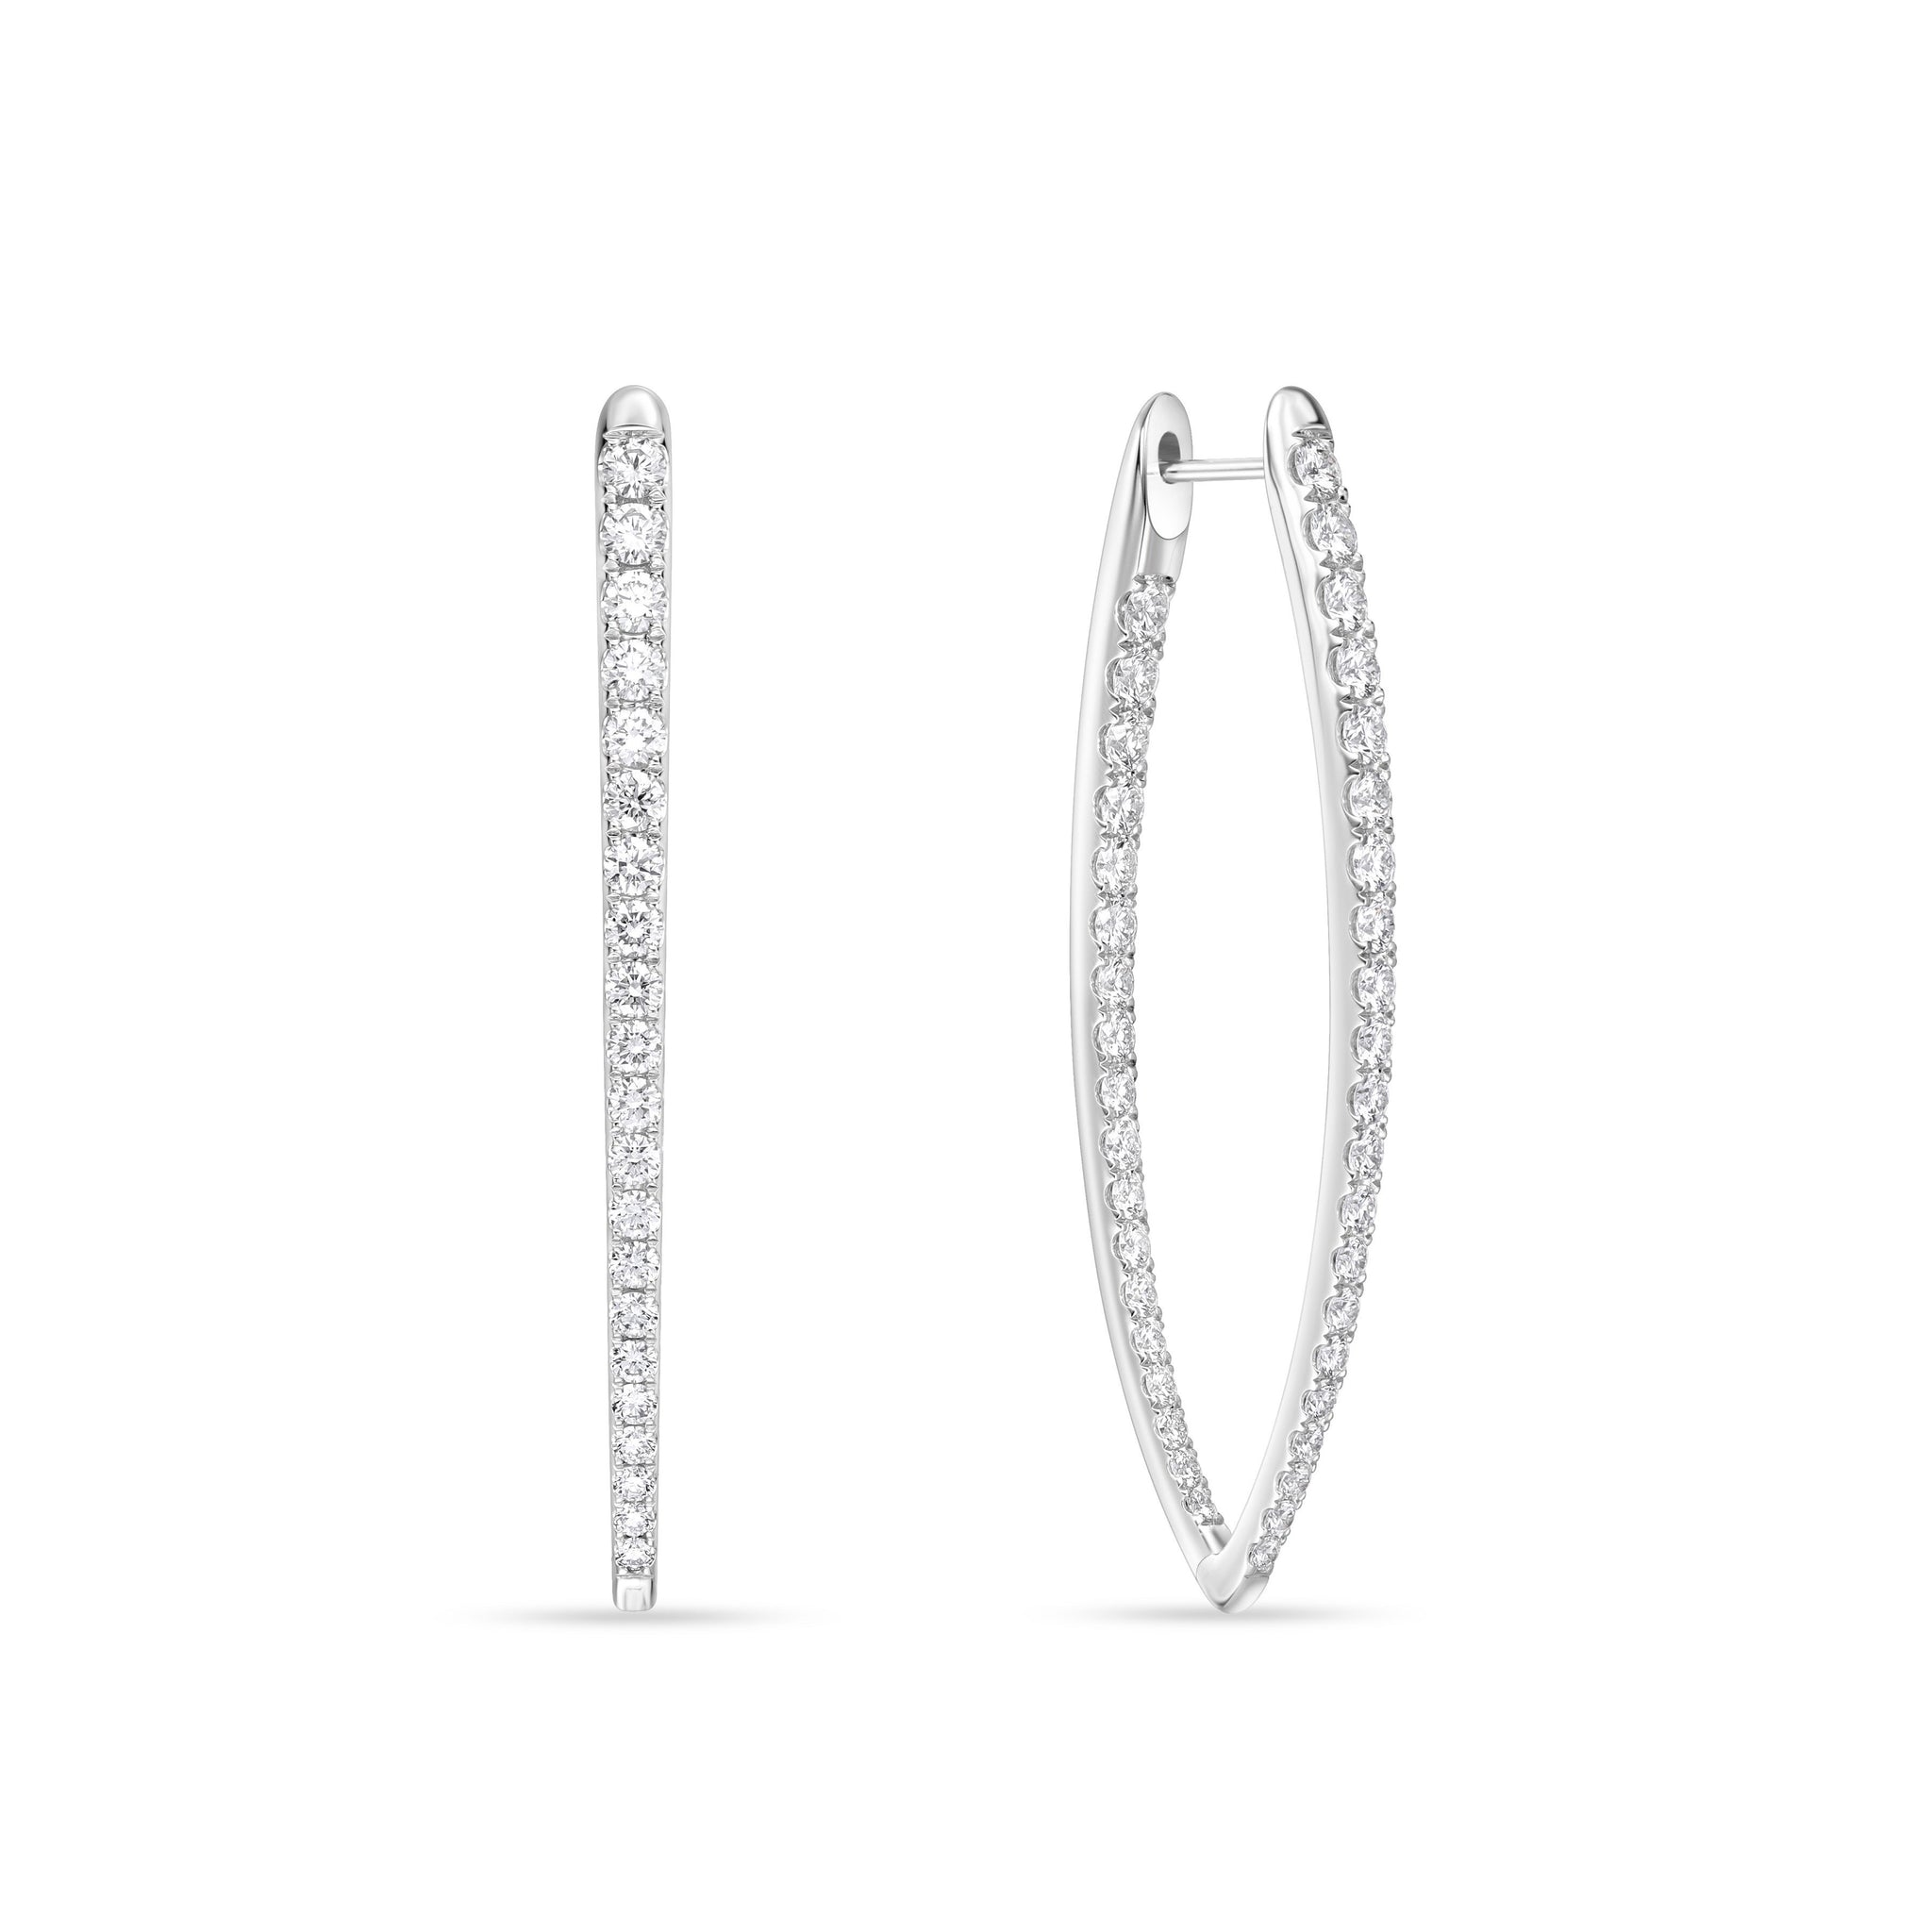 18K White Gold V Shaped Diamond Earrings